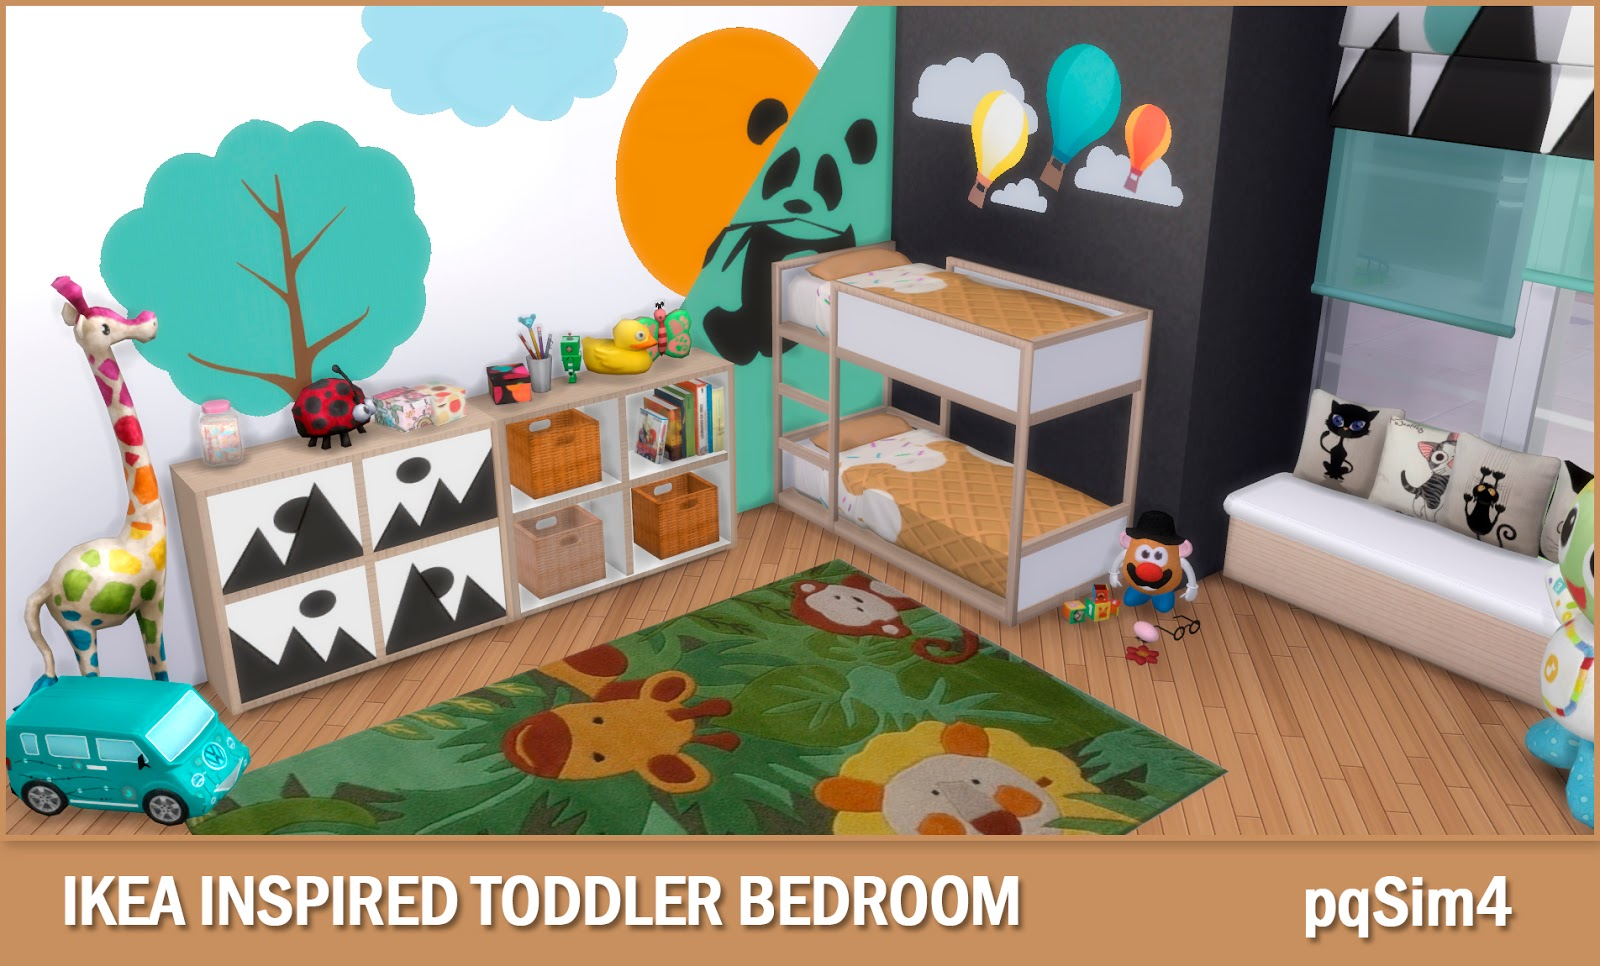 Ikea Inspired Toddler Bedroom Sims 4 Custom Content